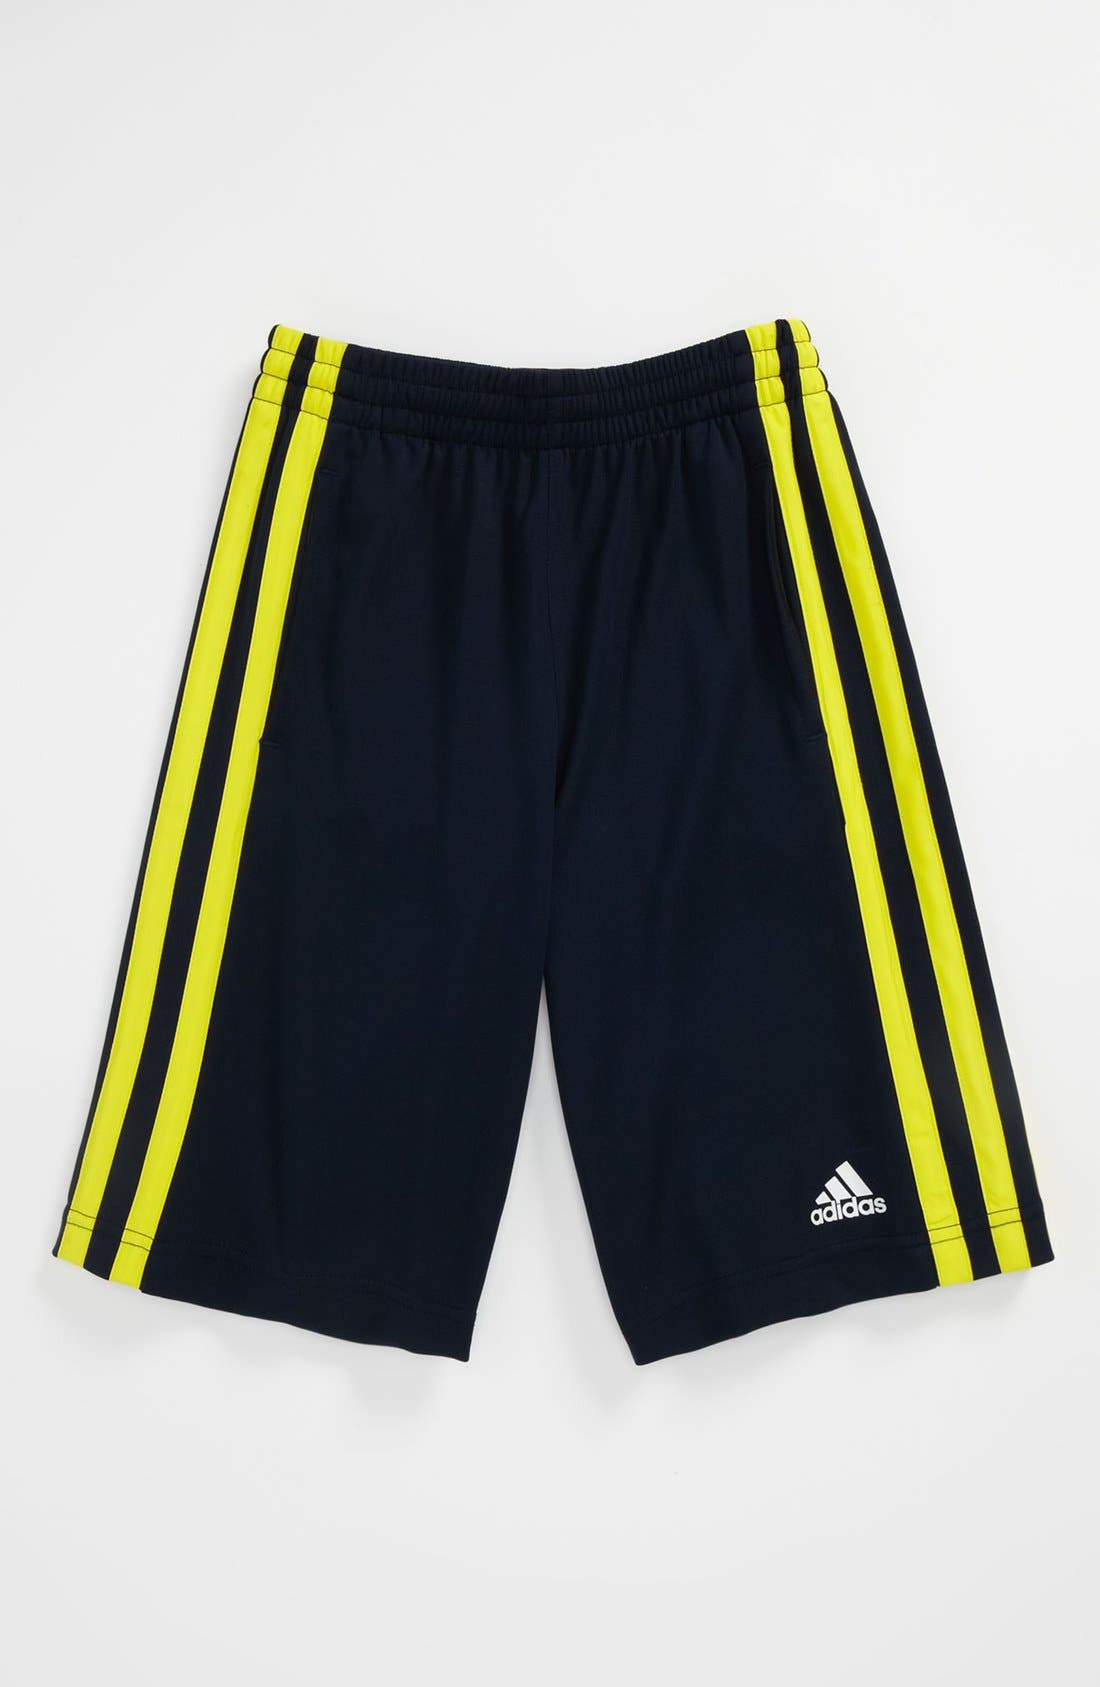 Main Image - adidas 'Fat Stripes' Shorts (Big Boys)